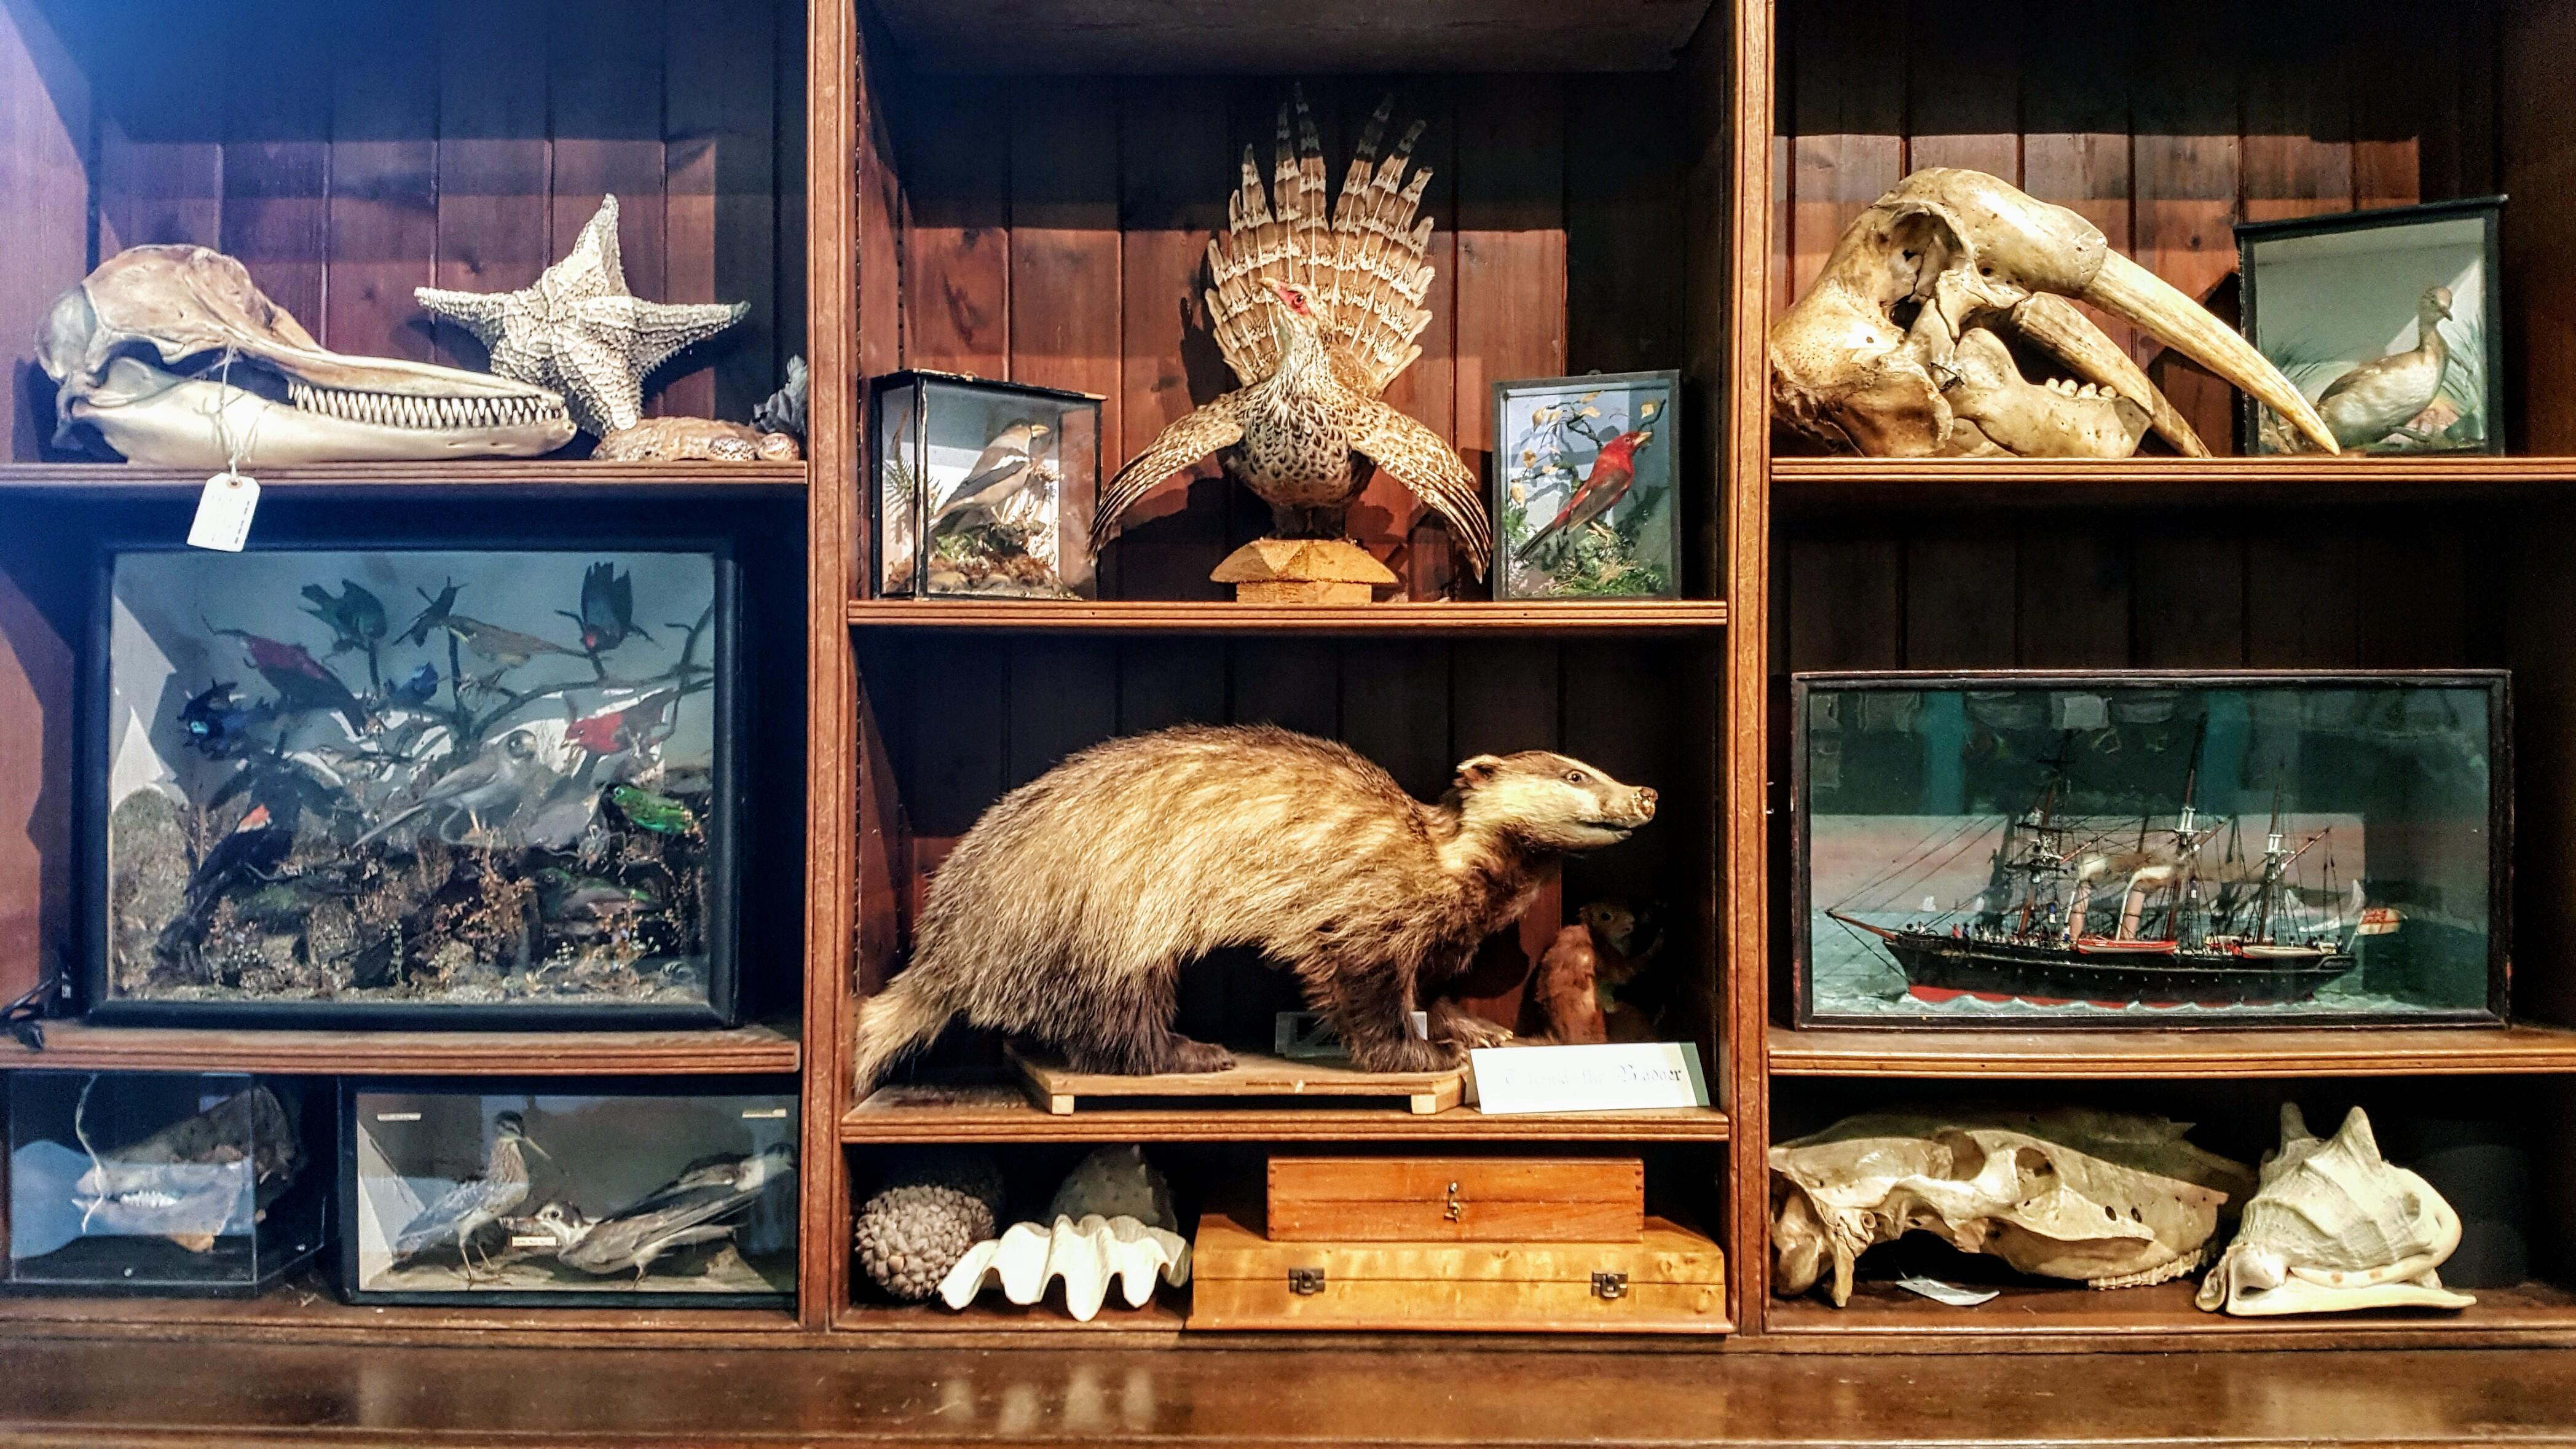 Need Your Help Choose Objects Our Cabinet